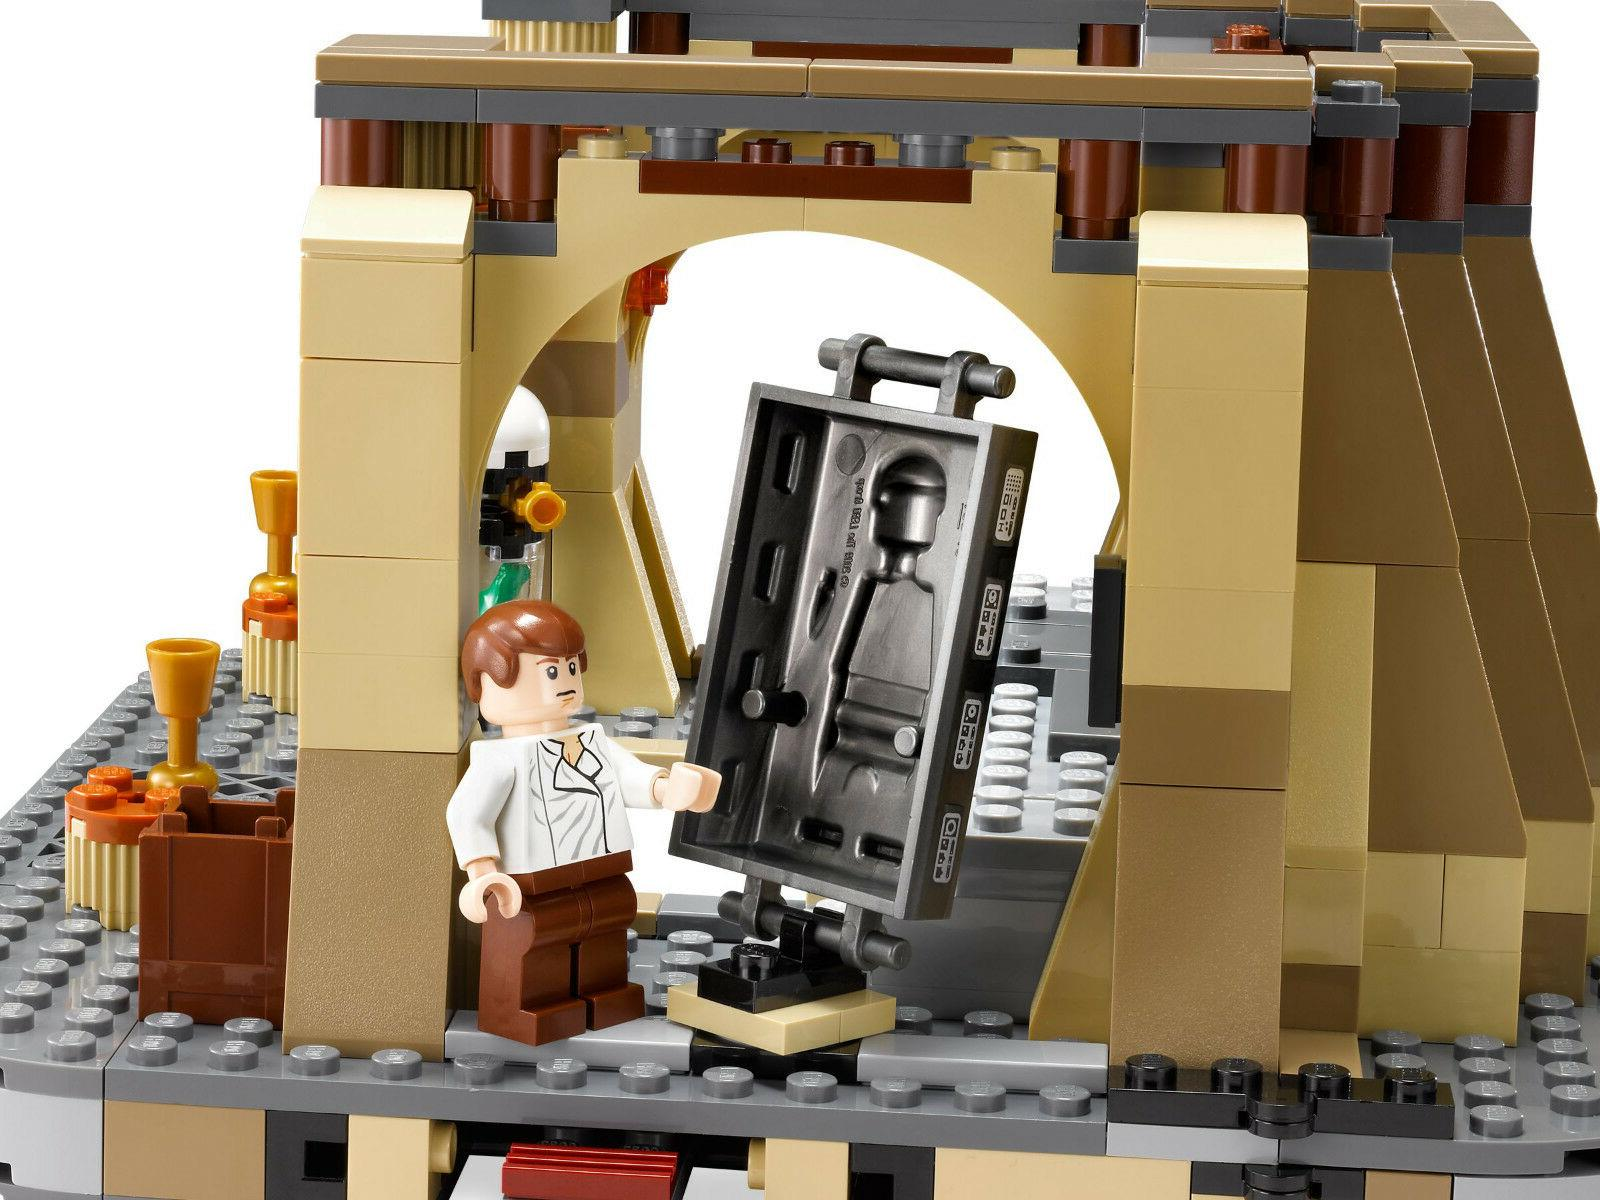 LEGO PALACE RETIRED SET OF THE JEDI